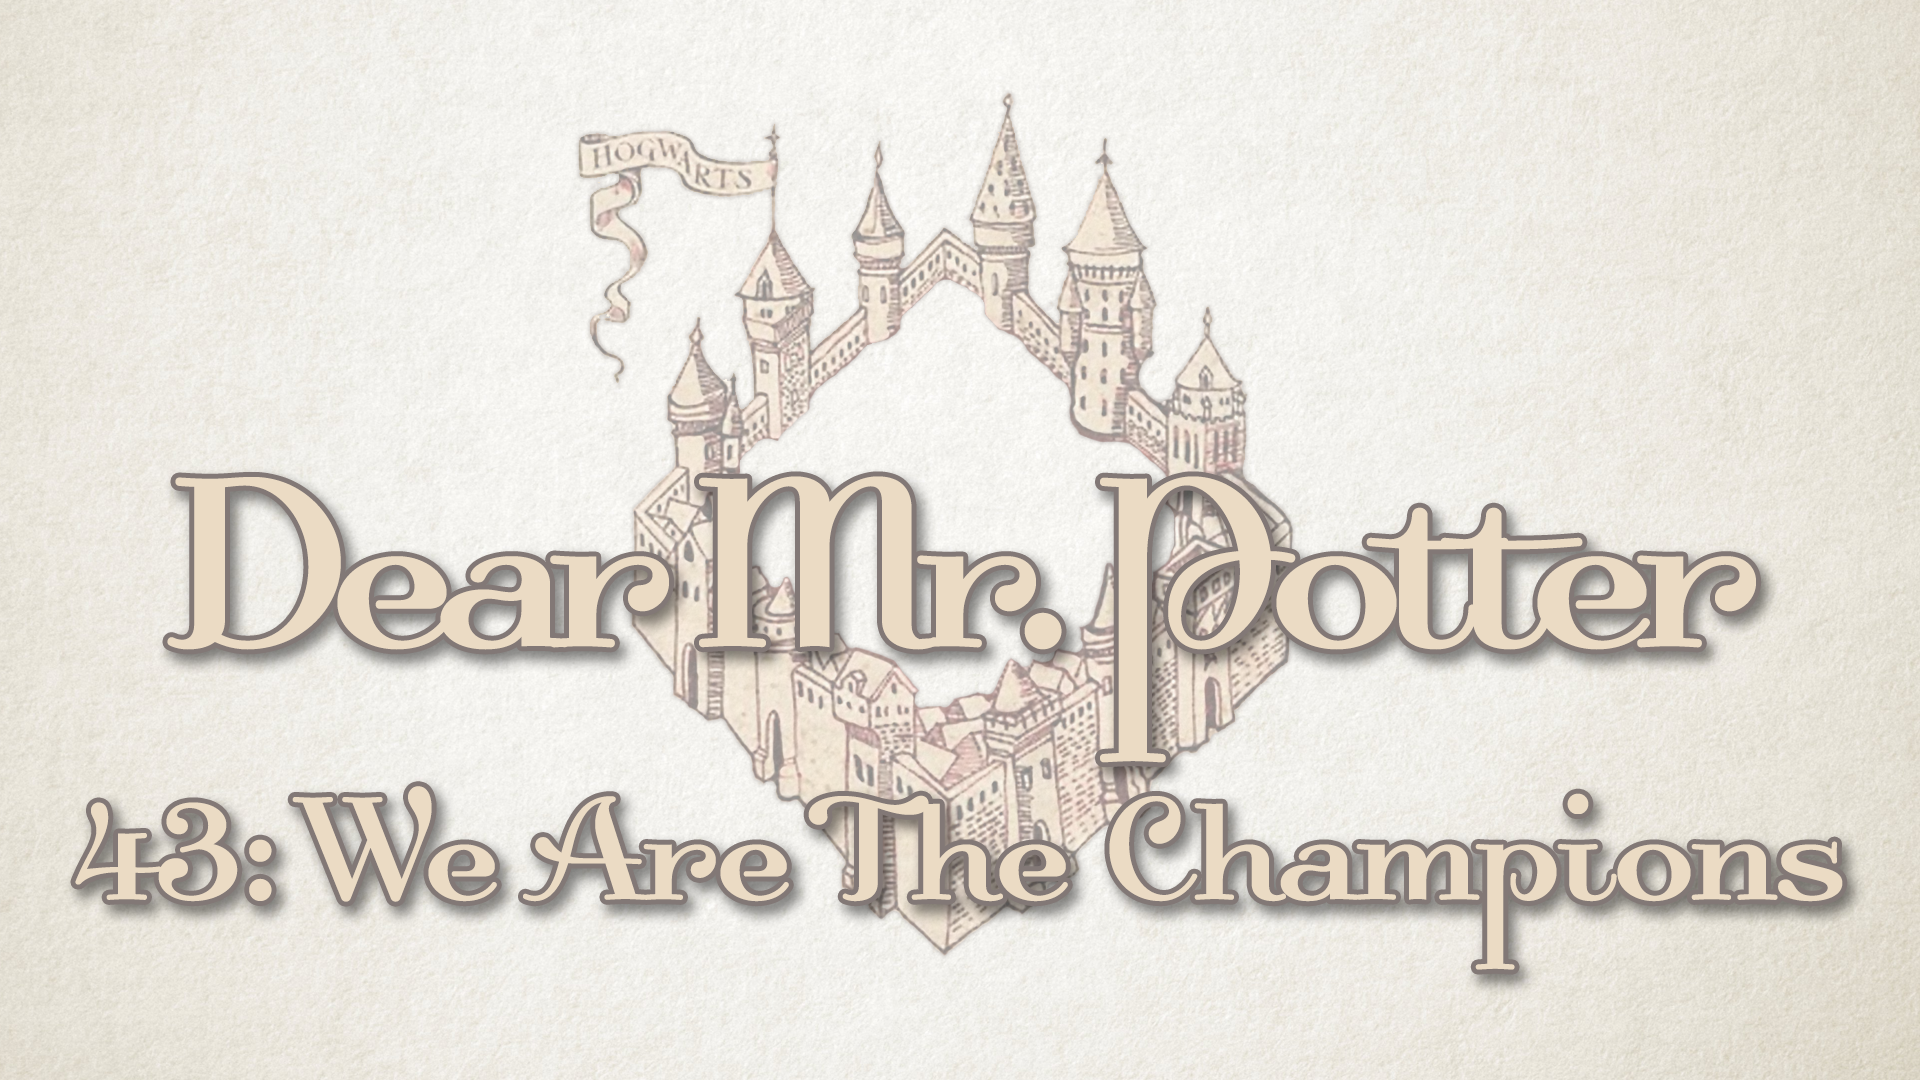 Dear Mr Potter 43 We Are The Champions Point North Media 26951 views | 17275 downloads. point north media